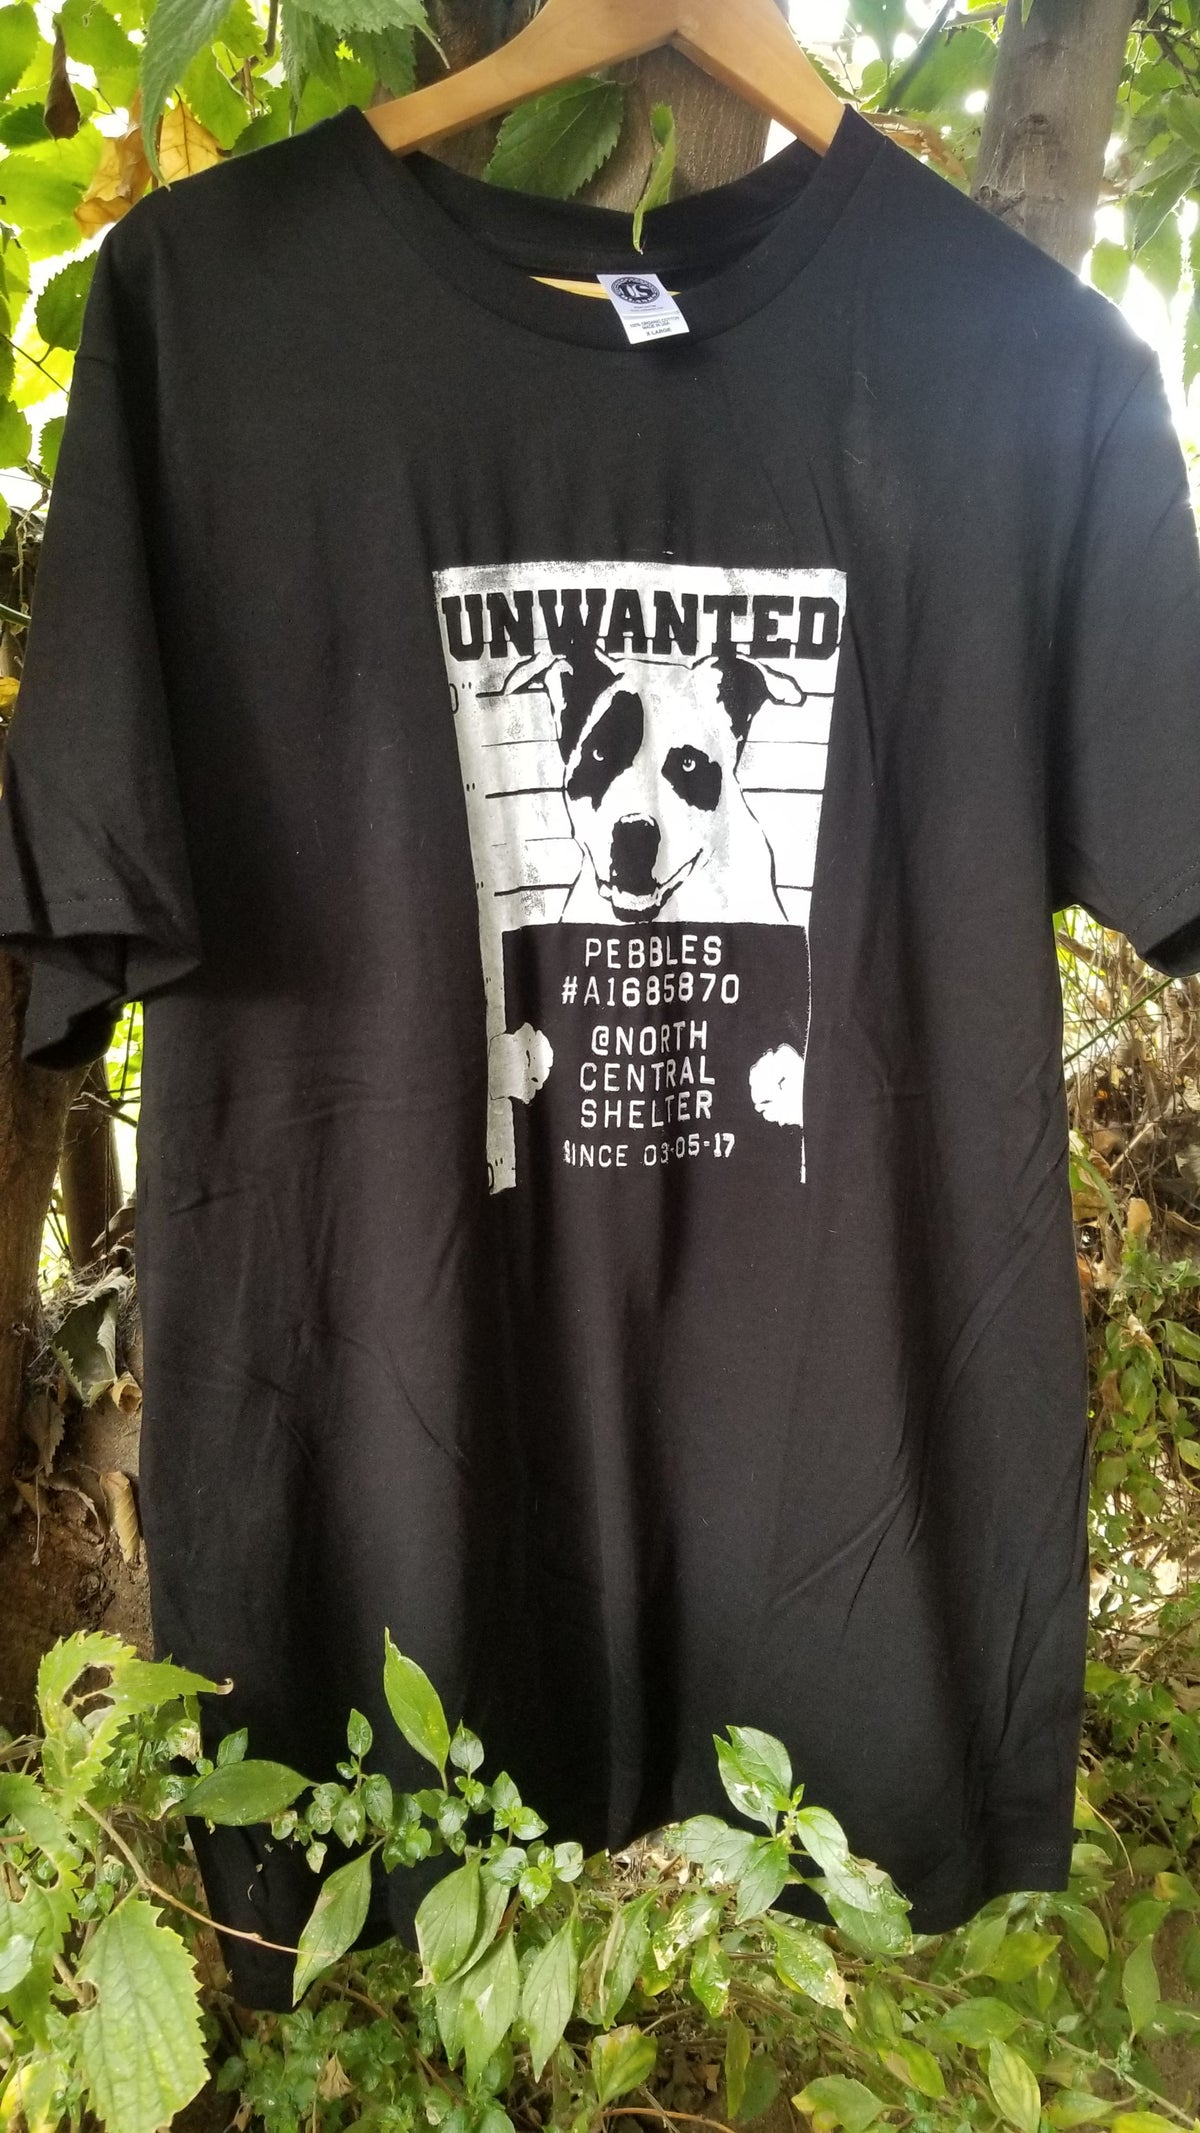 Your Unwanted Dog T-shirt